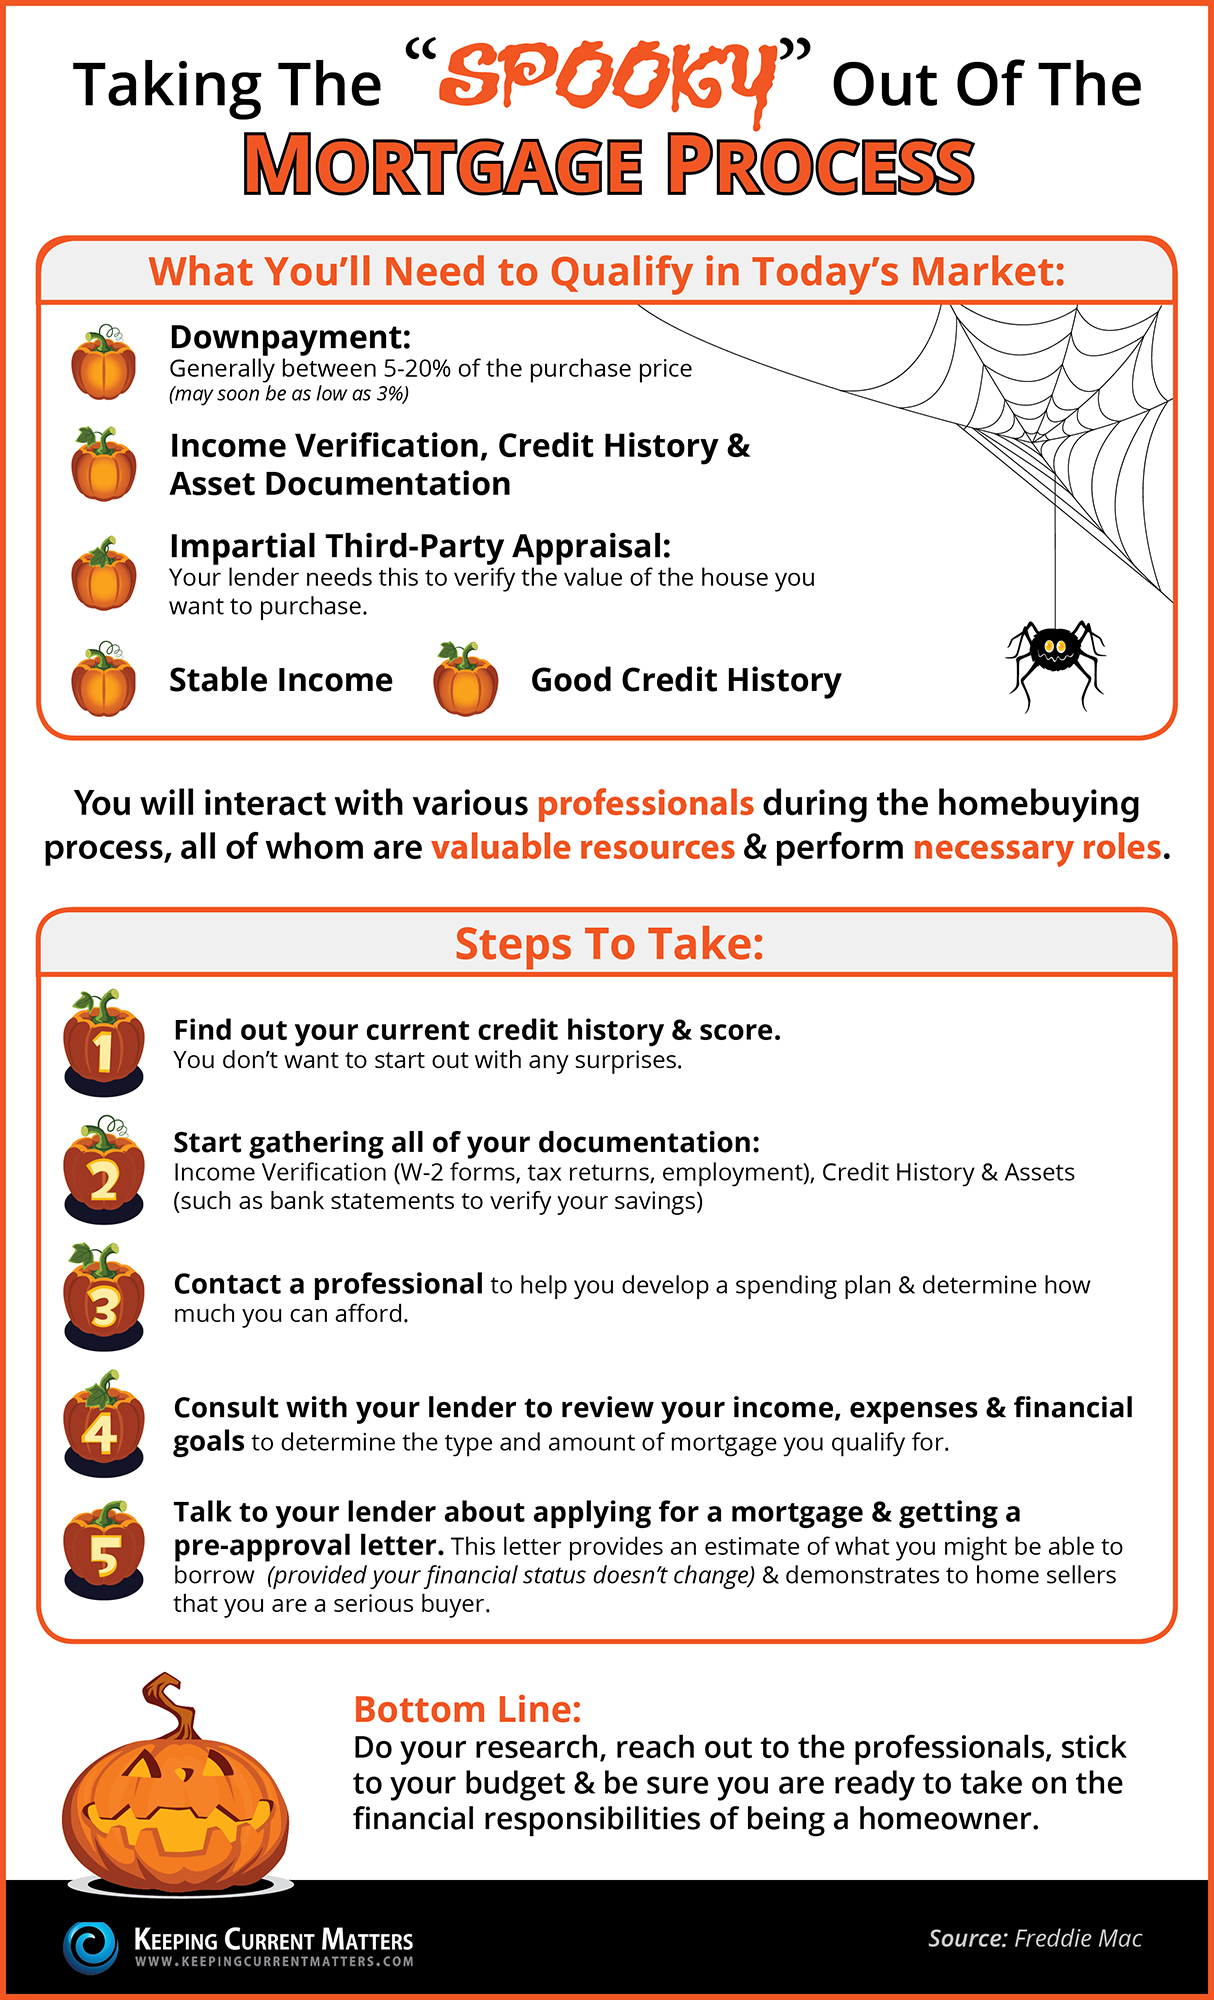 """Taking the """"Spooky"""" Out of the Mortgage Process 